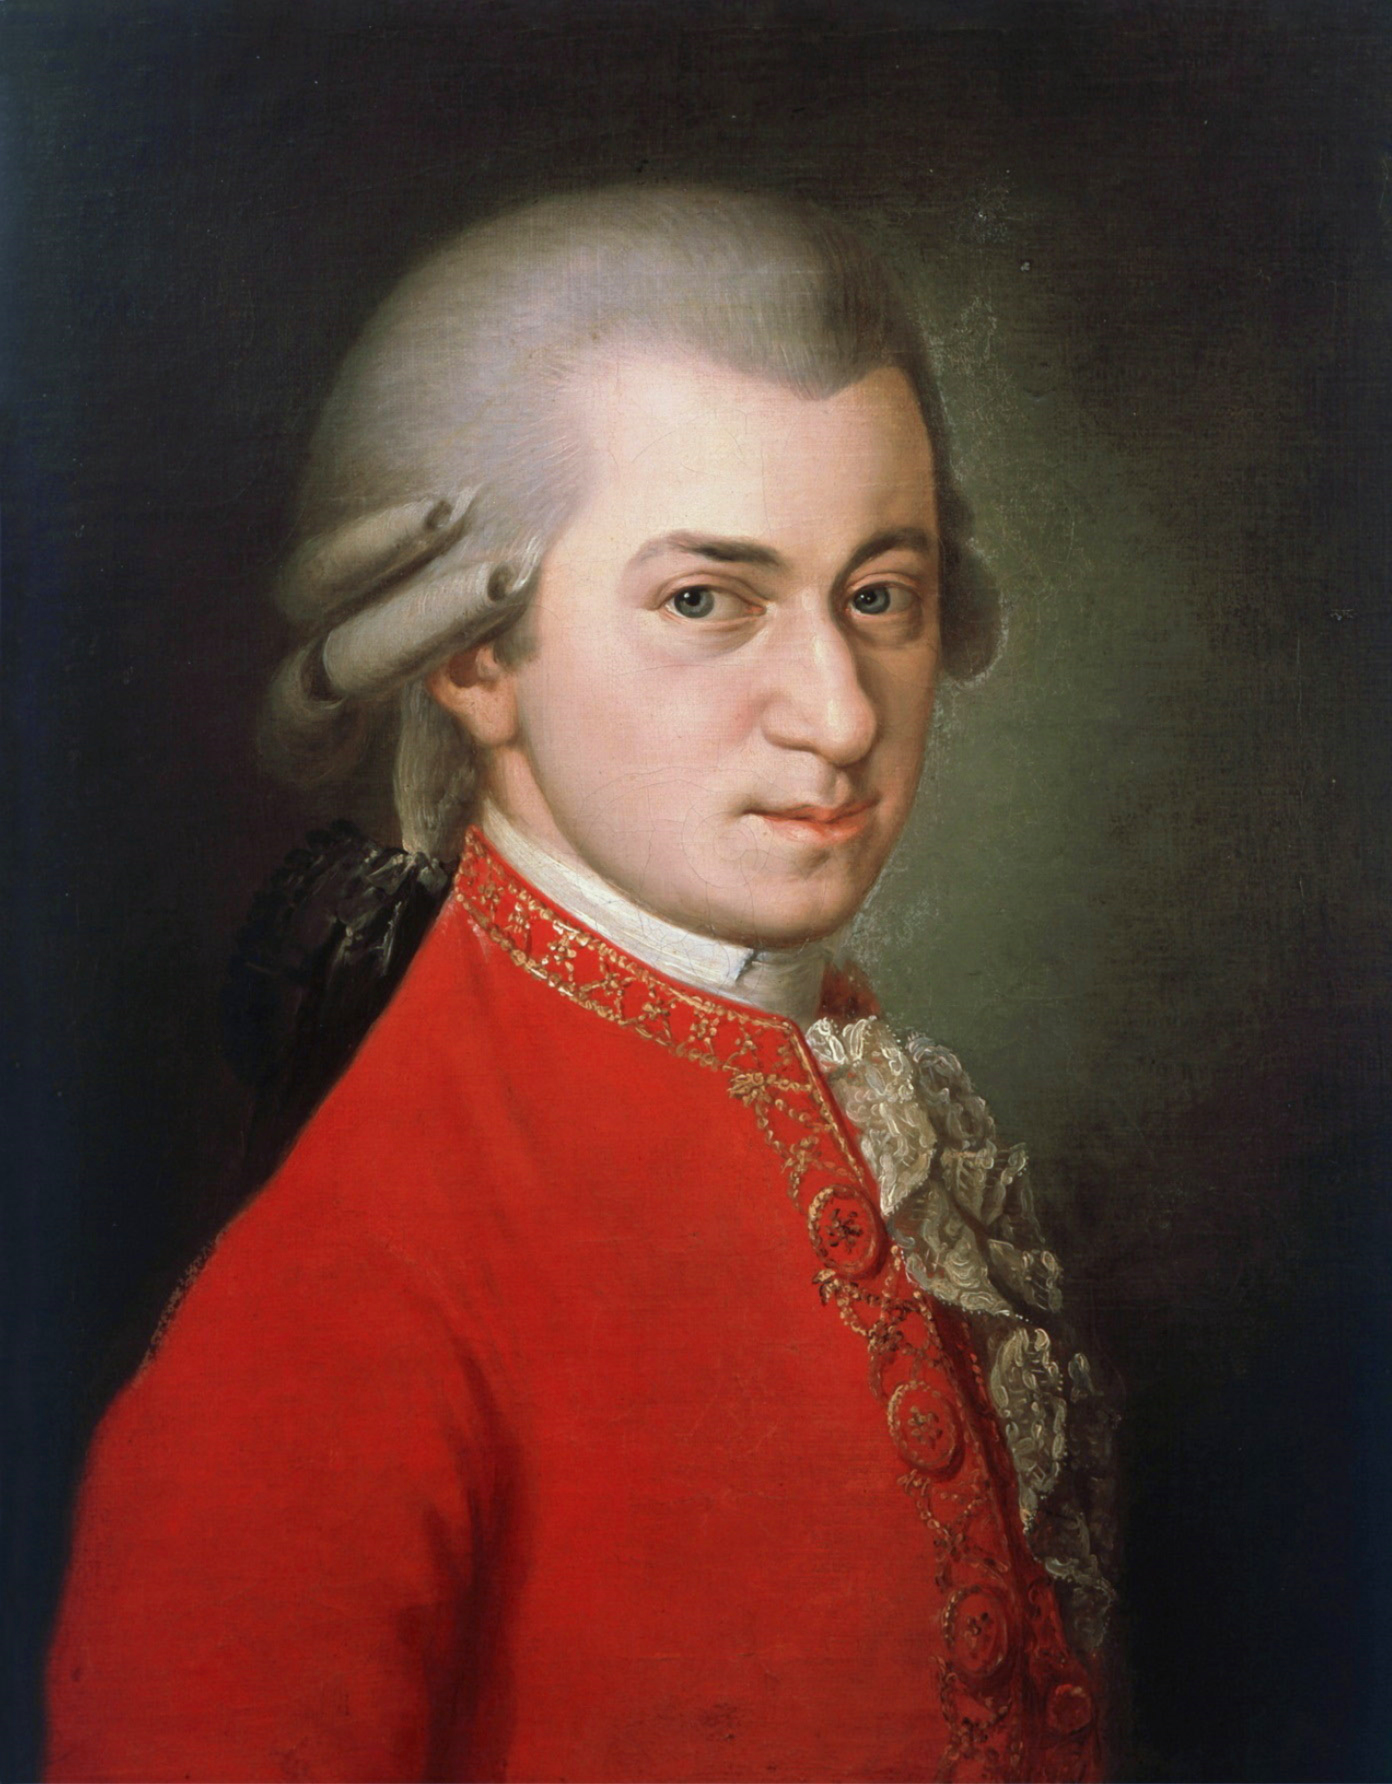 a biography of wolfgang amadeus mozart the composer Born on january 27, 1756, in salzburg, austria, wolfgang amadeus mozart was a musician capable of playing multiple instruments who started playing in public .